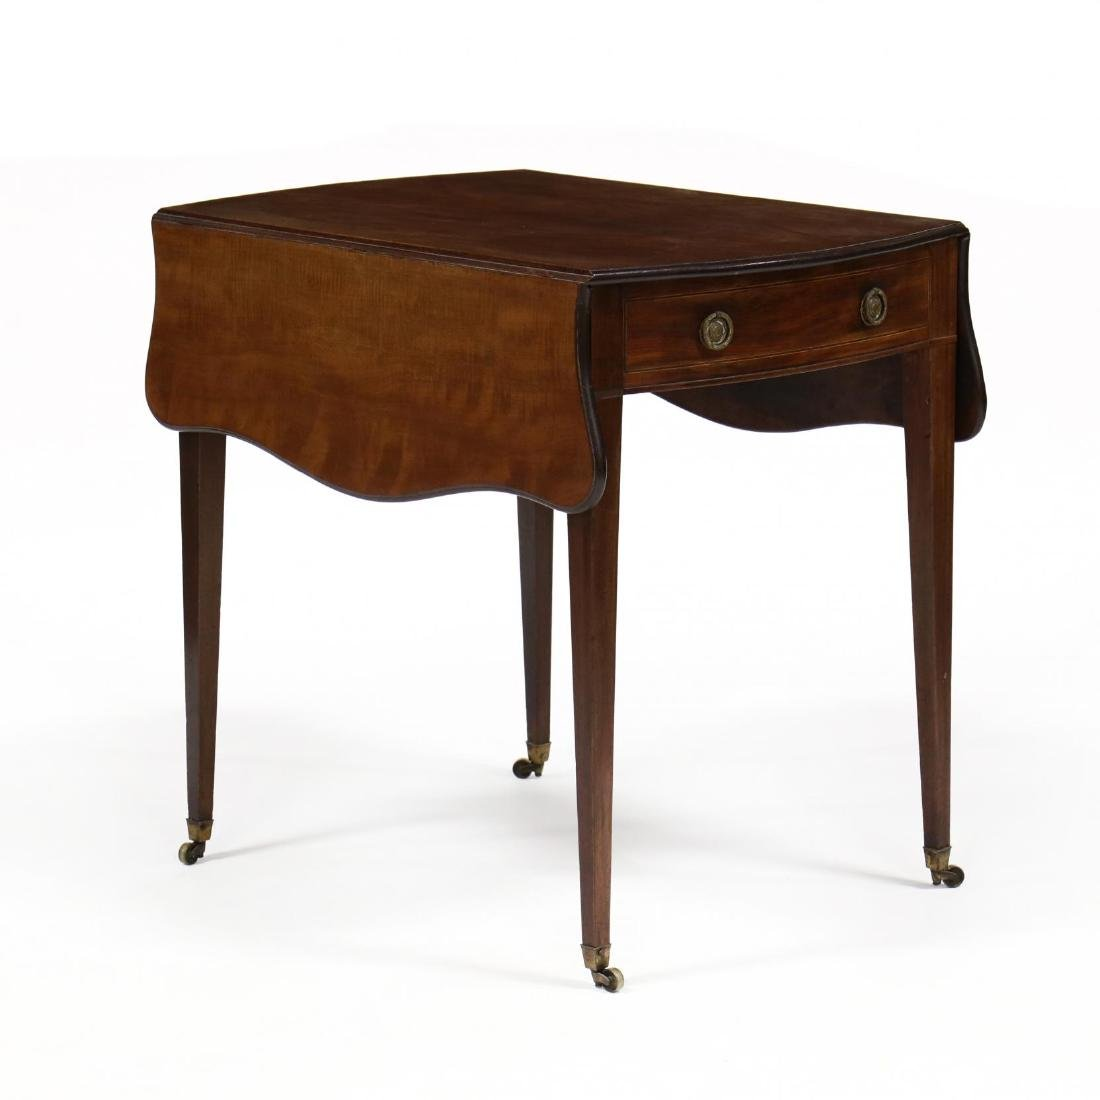 George III Mahogany Bow Front Pembroke Table - 7